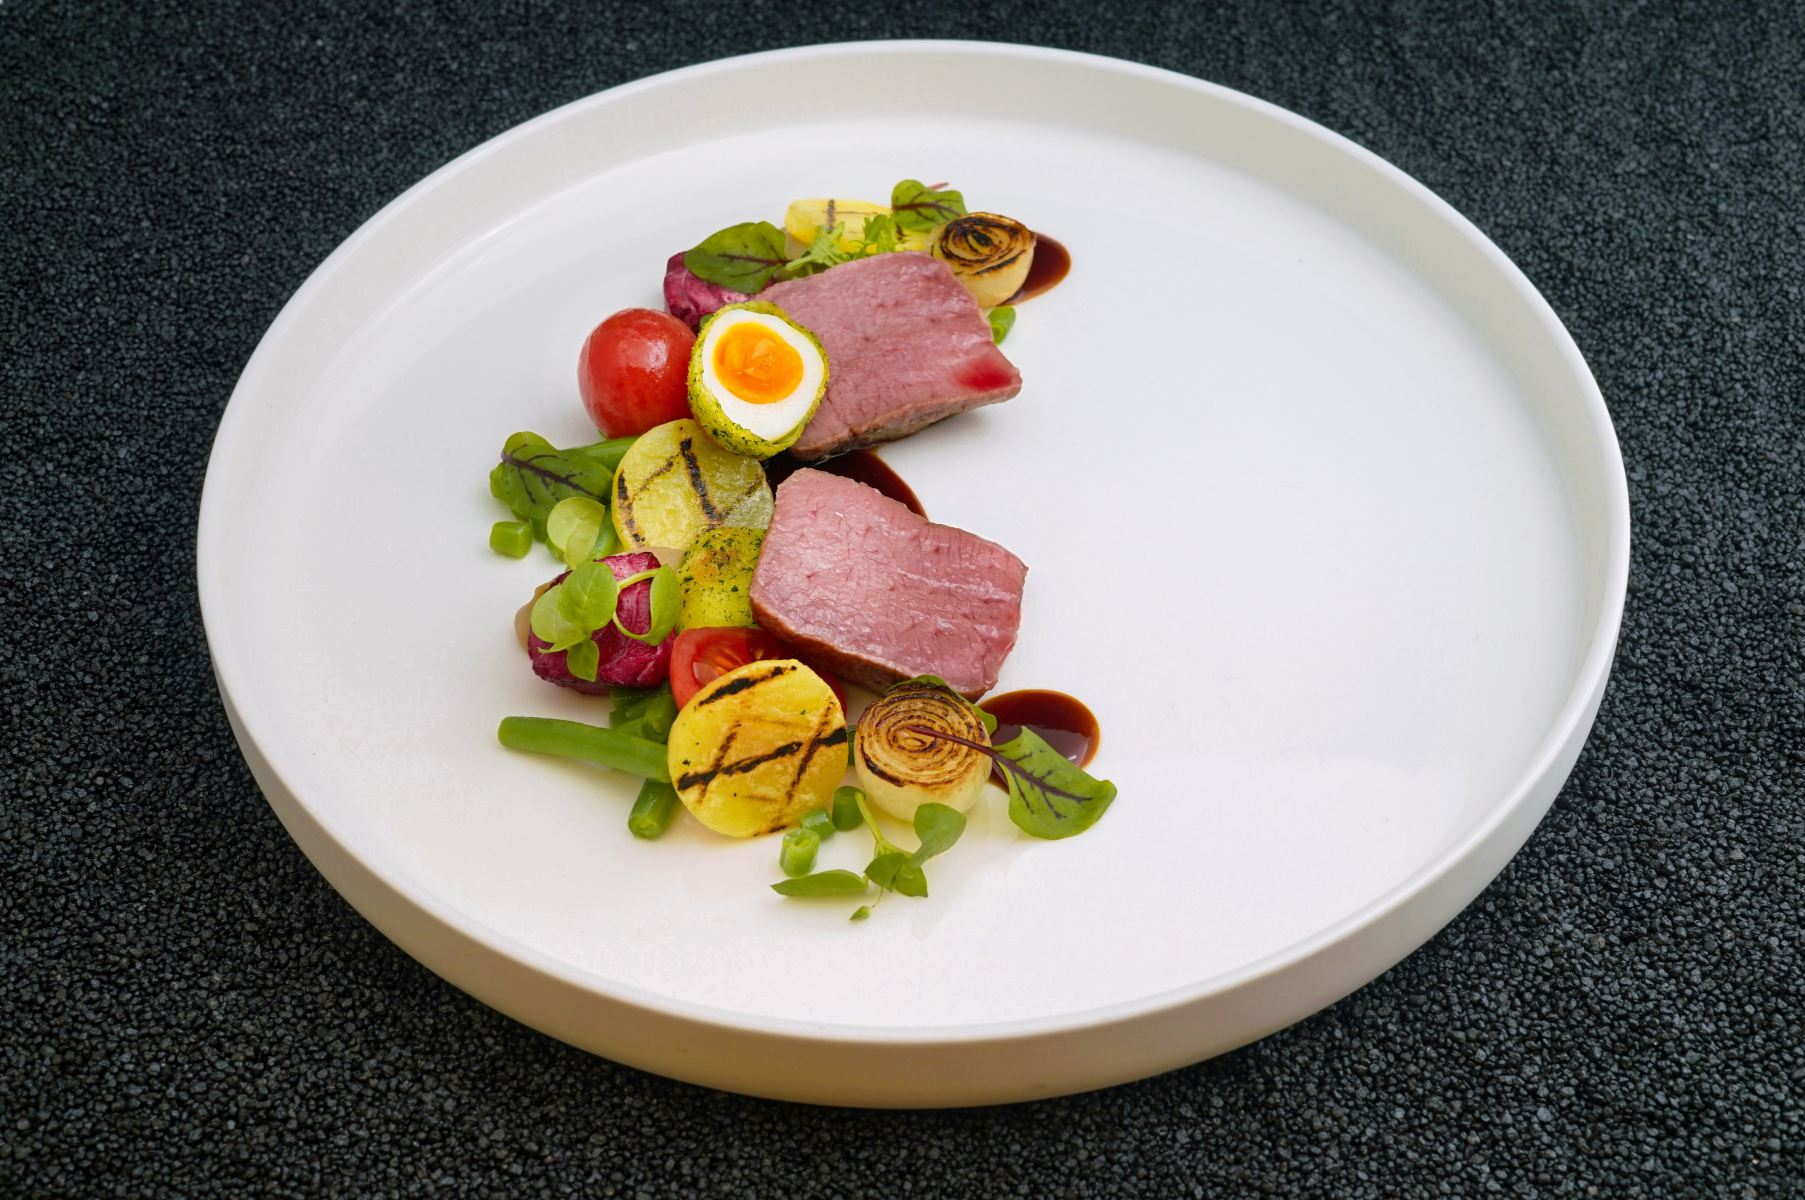 Why Expensive Restaurants Serve Tiny Portions